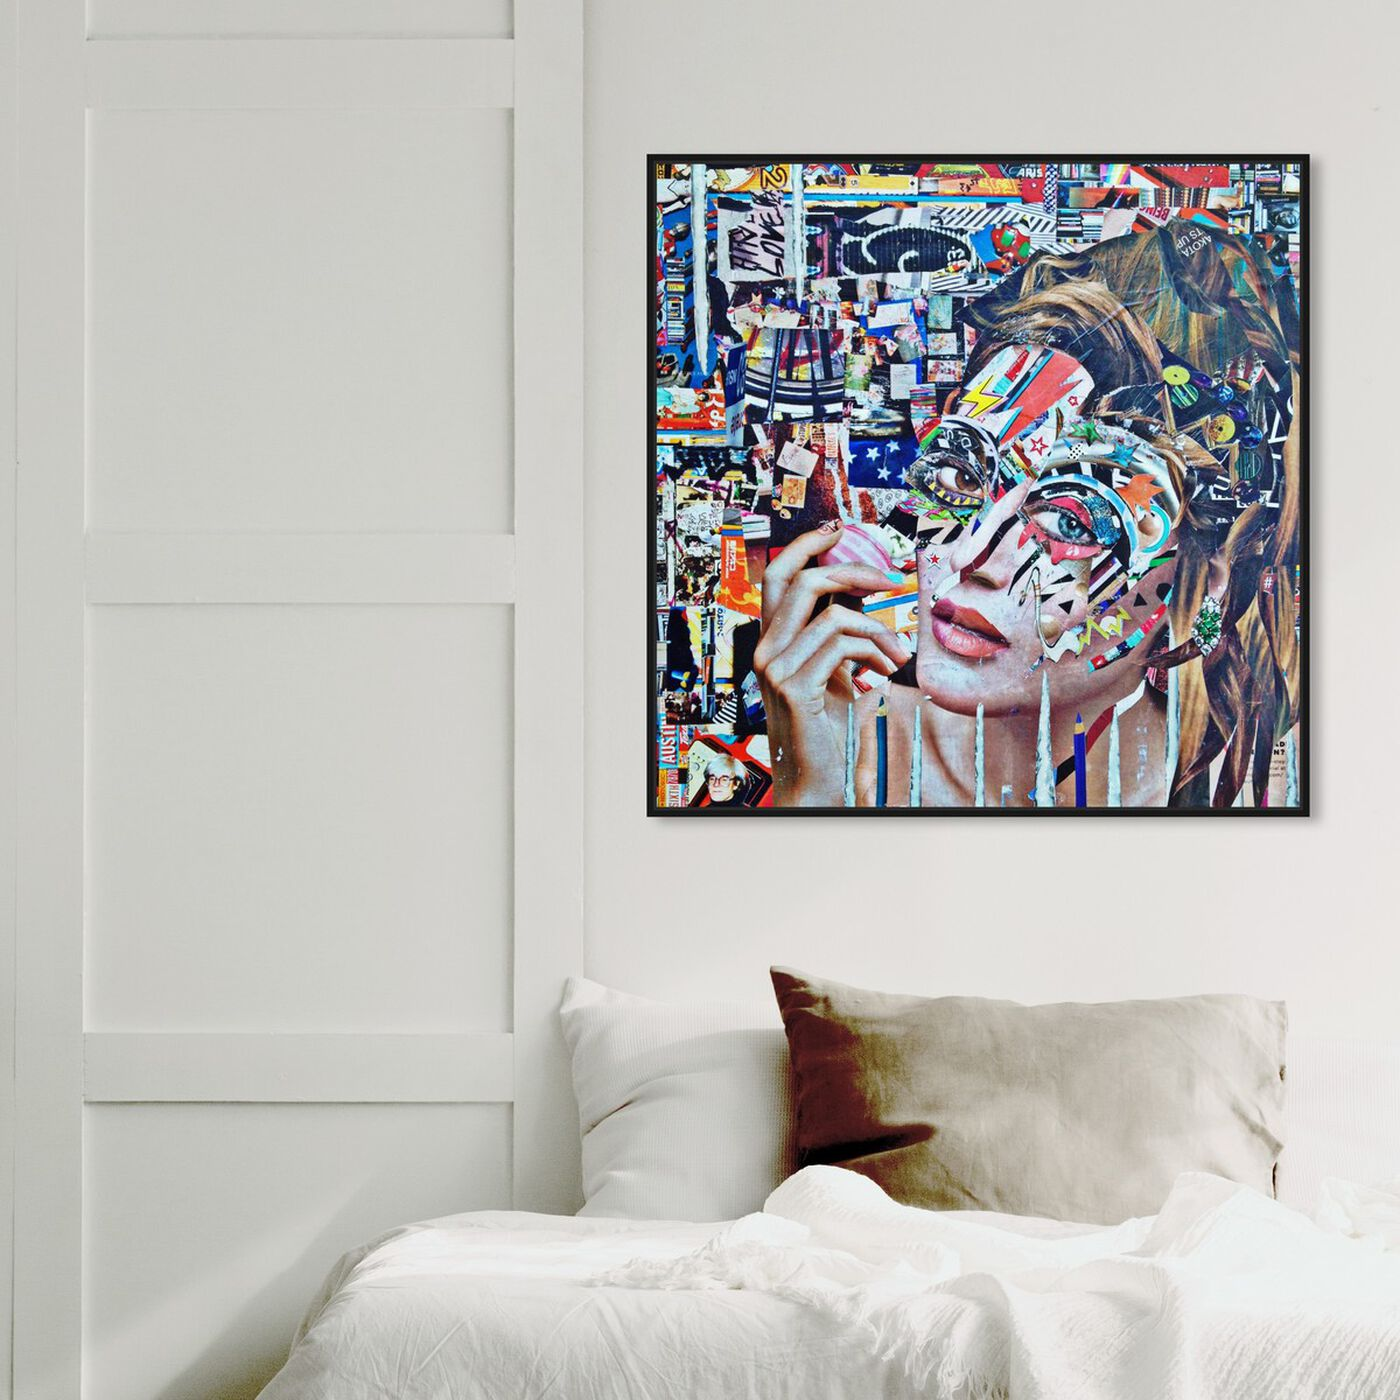 Hanging view of Eos by Katy Hirschfeld featuring fashion and glam and portraits art.